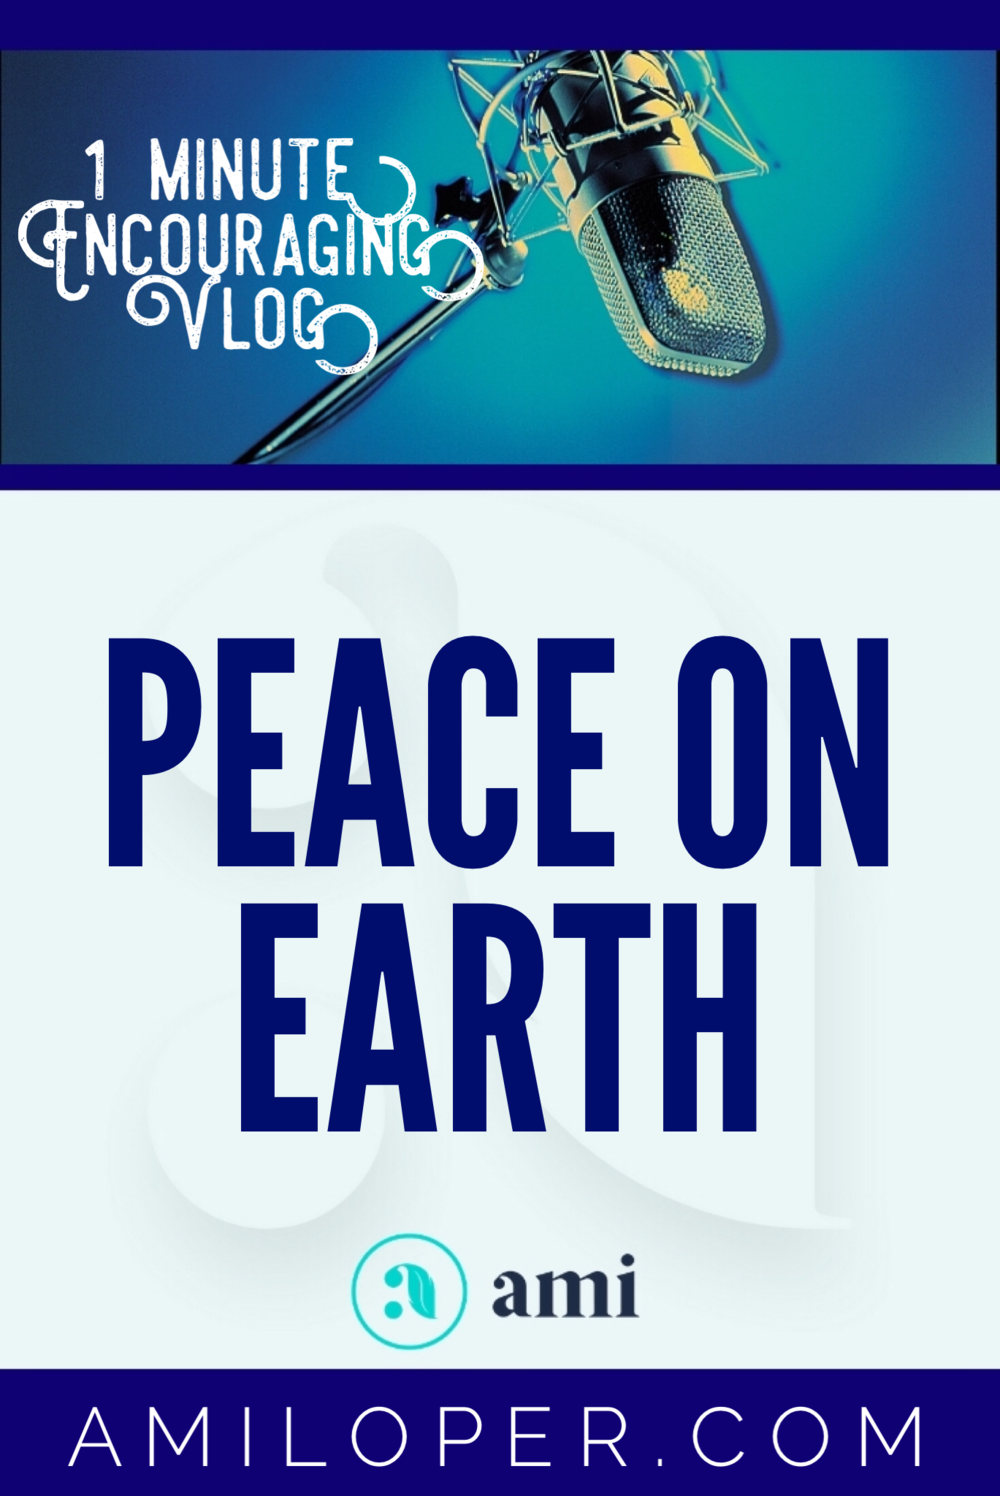 """""""Peace on Earth""""? Are you kidding? Has there ever been even a moment when this Earth was at peace? And yet, this is the declaration of the angels to the shepherds. What can they be talking about? #Peace #PeaceOnEarth #vlog"""